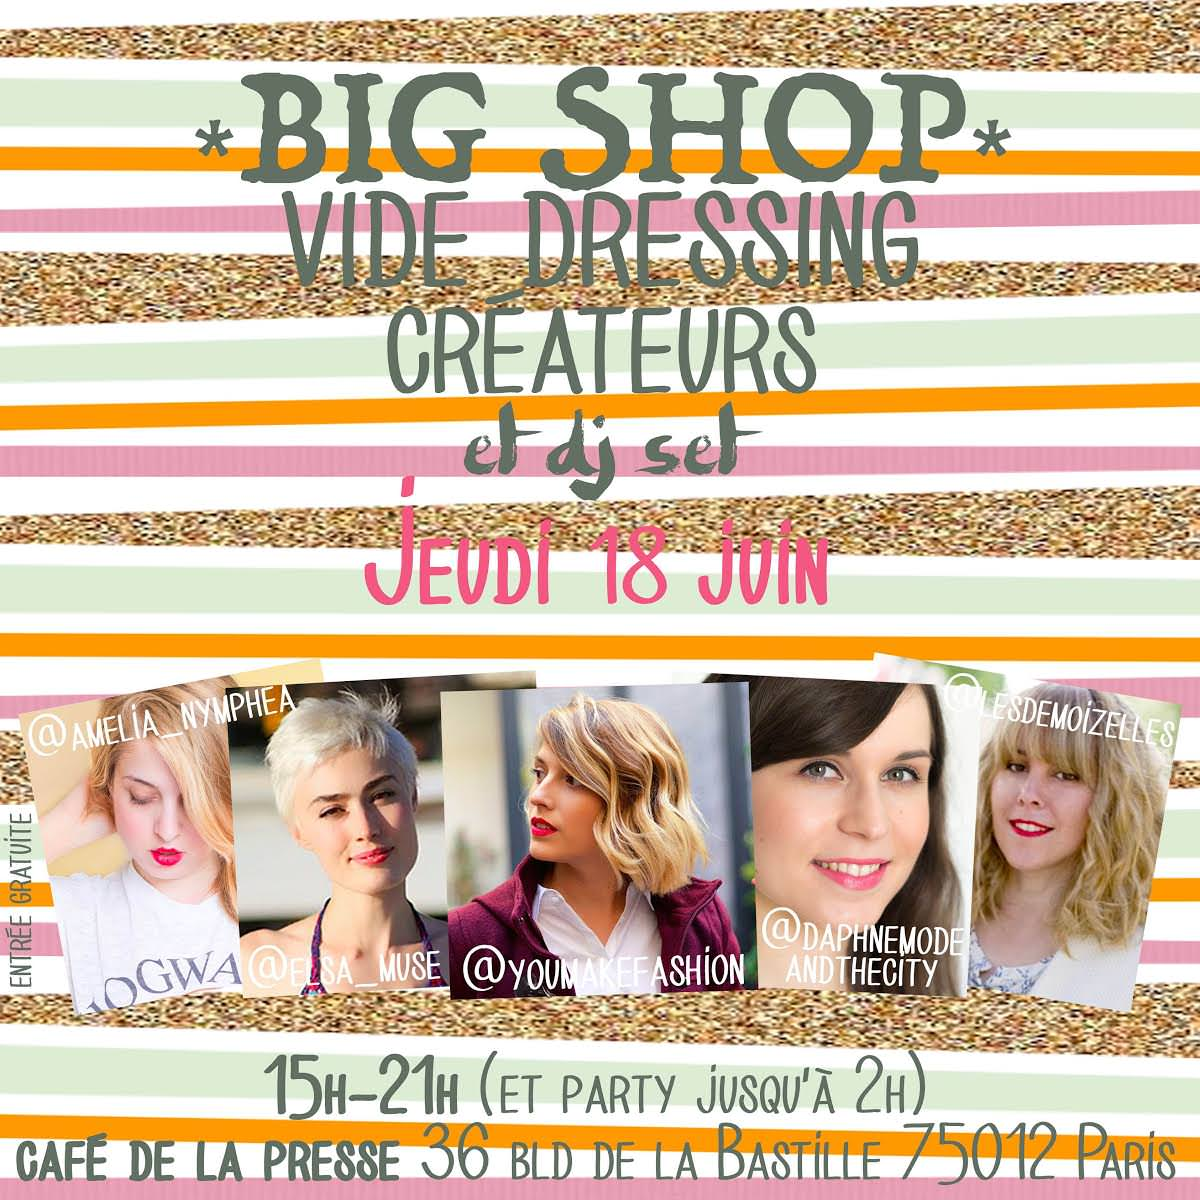 Blog-mode-and-the-city-lifestyle-cinq-petites-choses-135-vide-dressing-blogueuses